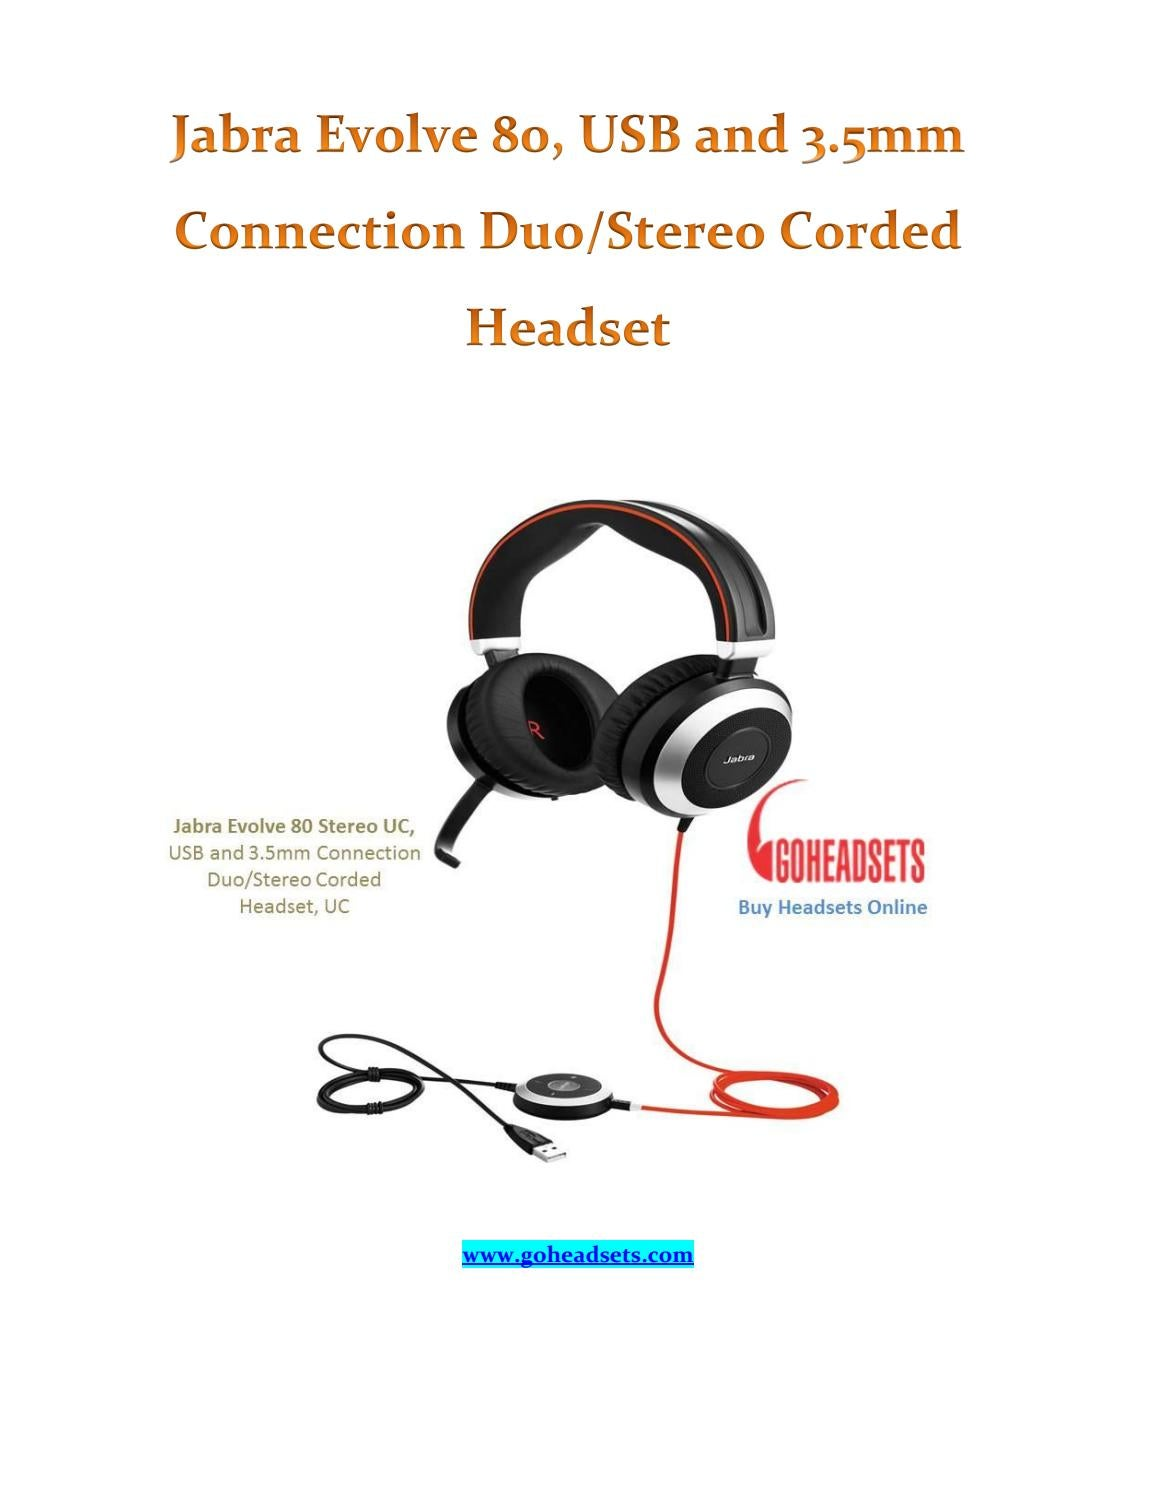 Jabra Evolve 80 Usb And 3 5mm Connection Duo Stereo Corded Headset By Go Headsets Issuu